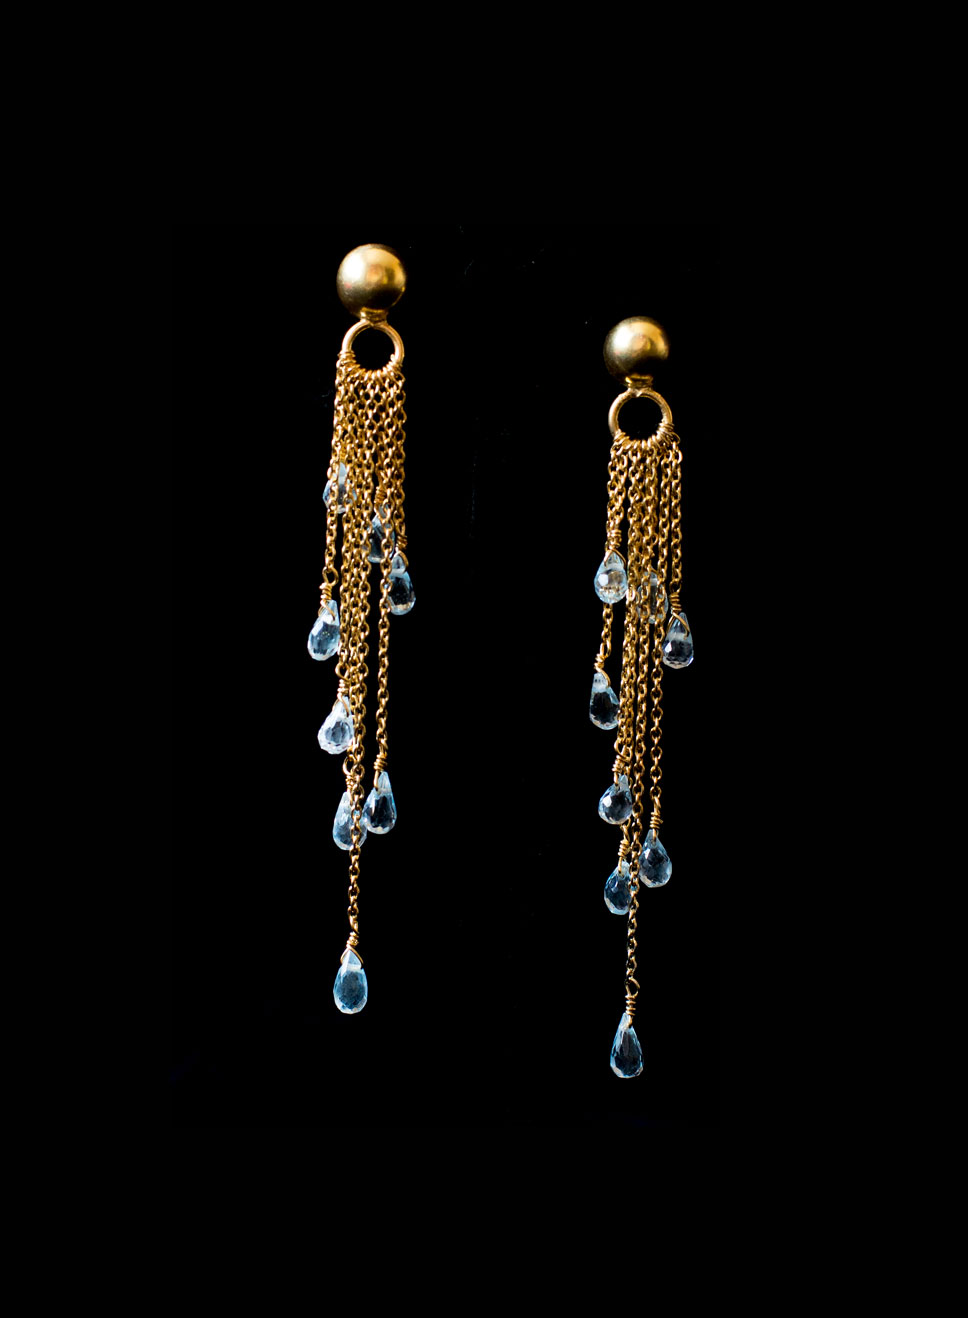 Gold plated silver multi chain with blue topaz drops. Available in amethyst, smoky quartz, peridot.  Earring length 7.5 cm.